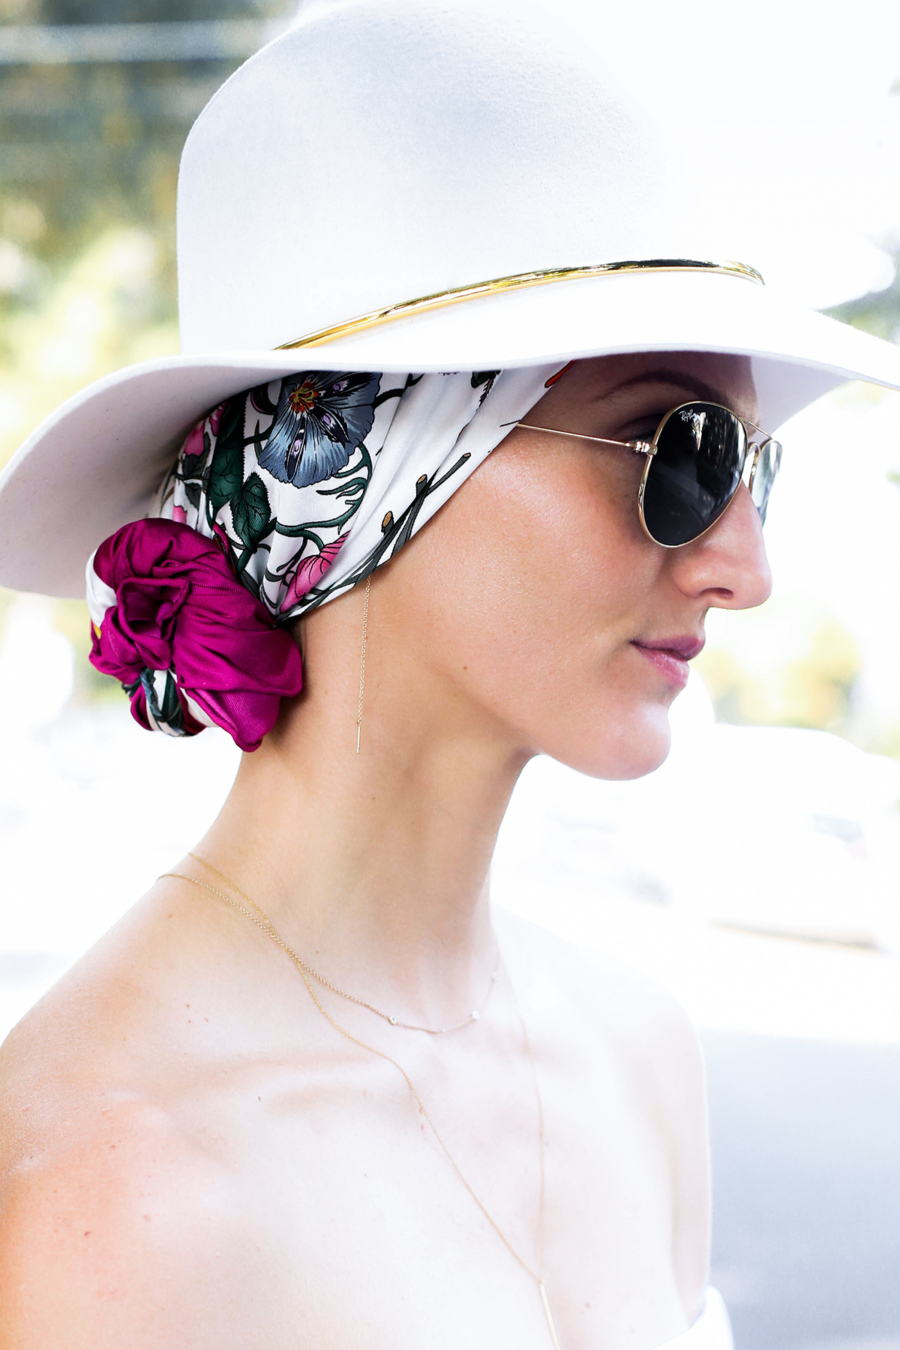 Silk Scarf - The 7 Best Mother's Day Gifts for Every Type of Mom // NotJessFashion.com